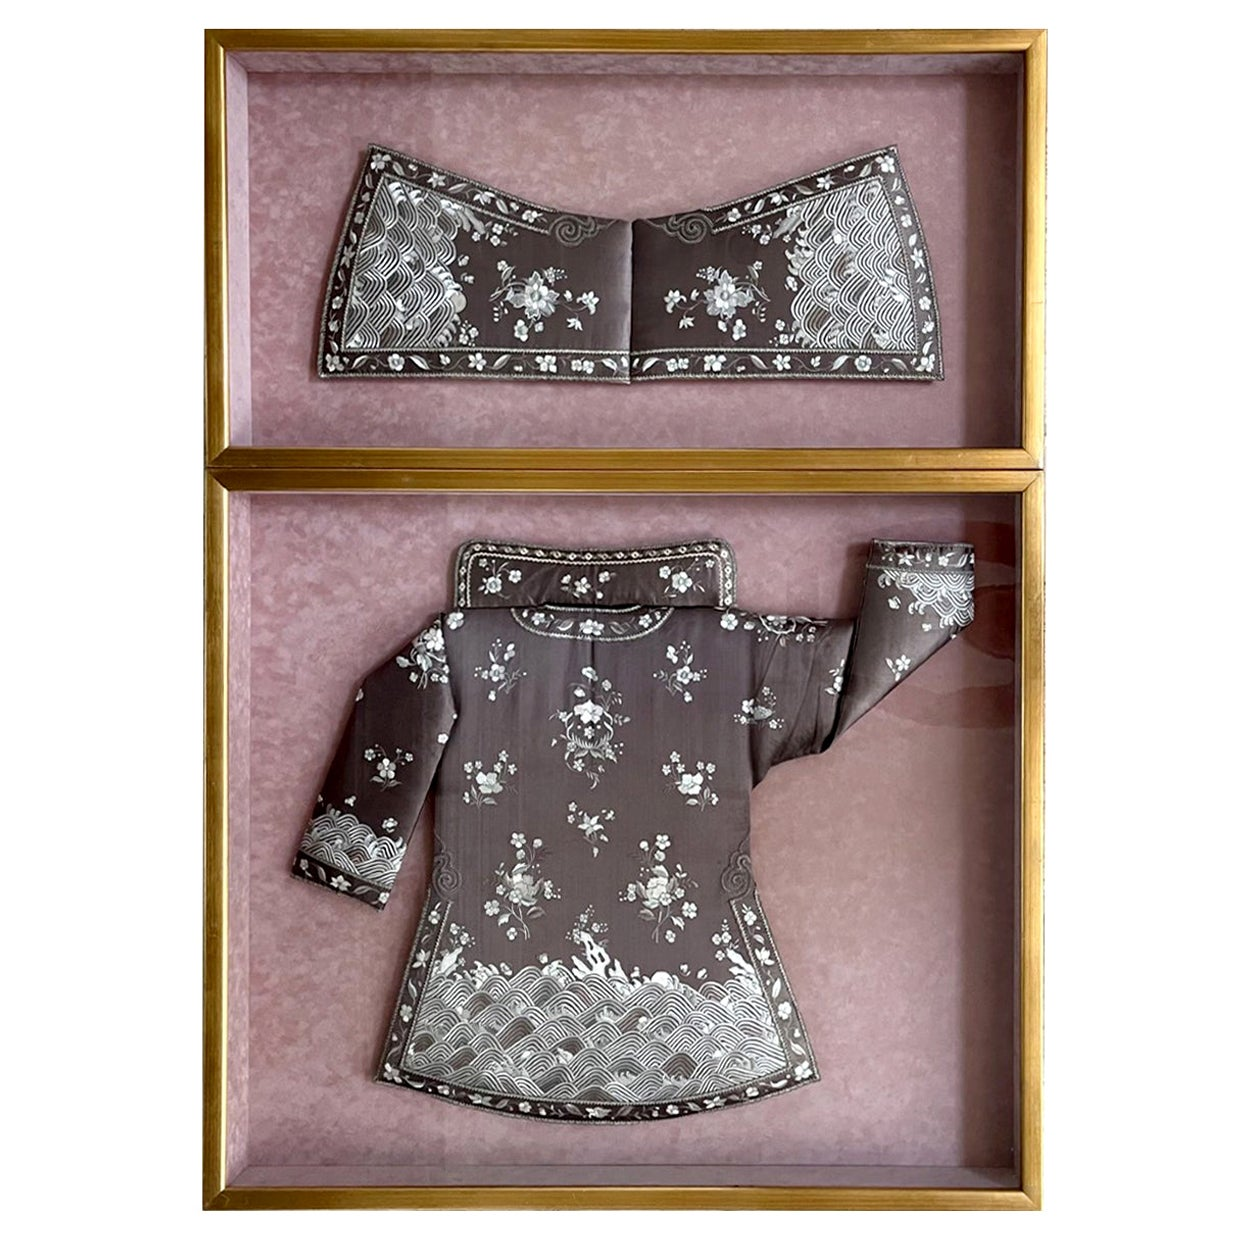 Framed Antique Two-Piece Chinese Embroidery Winter Jacket Ensemble